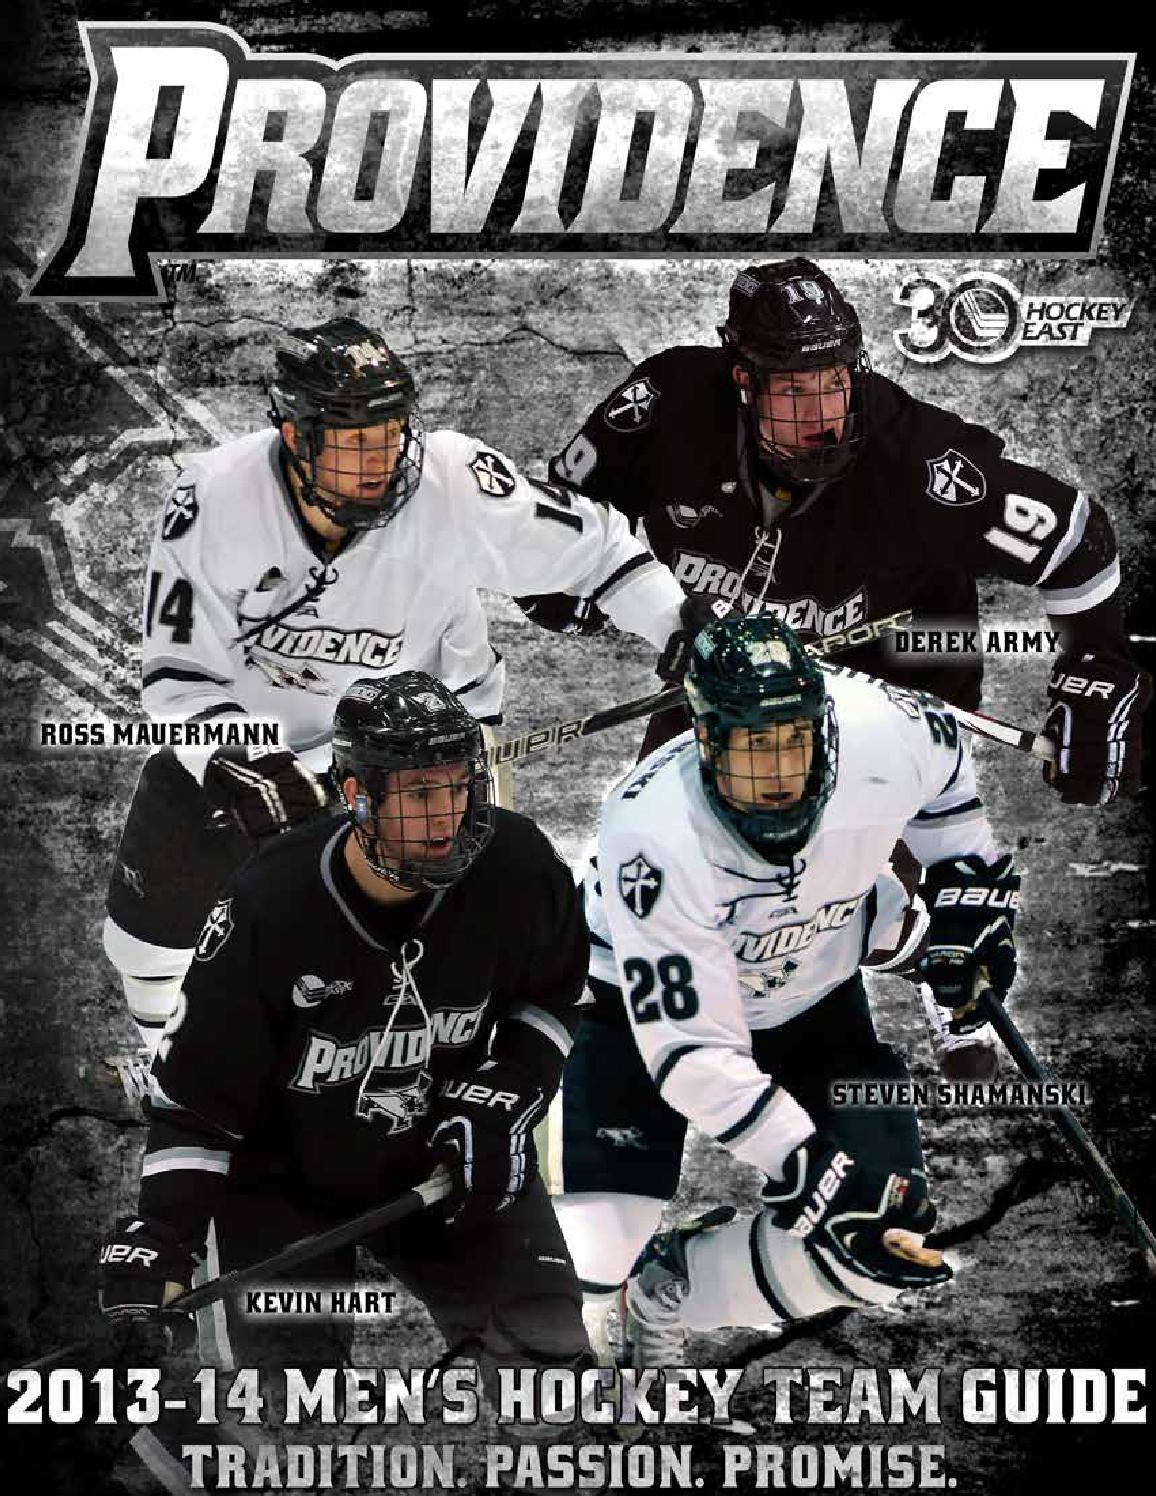 2013 14 Providence College Mens Hockey Team Guide 10 15 13small By Gt See More 1pc Conductive Silver Ink Pen Writer Csip 50 S Issuu